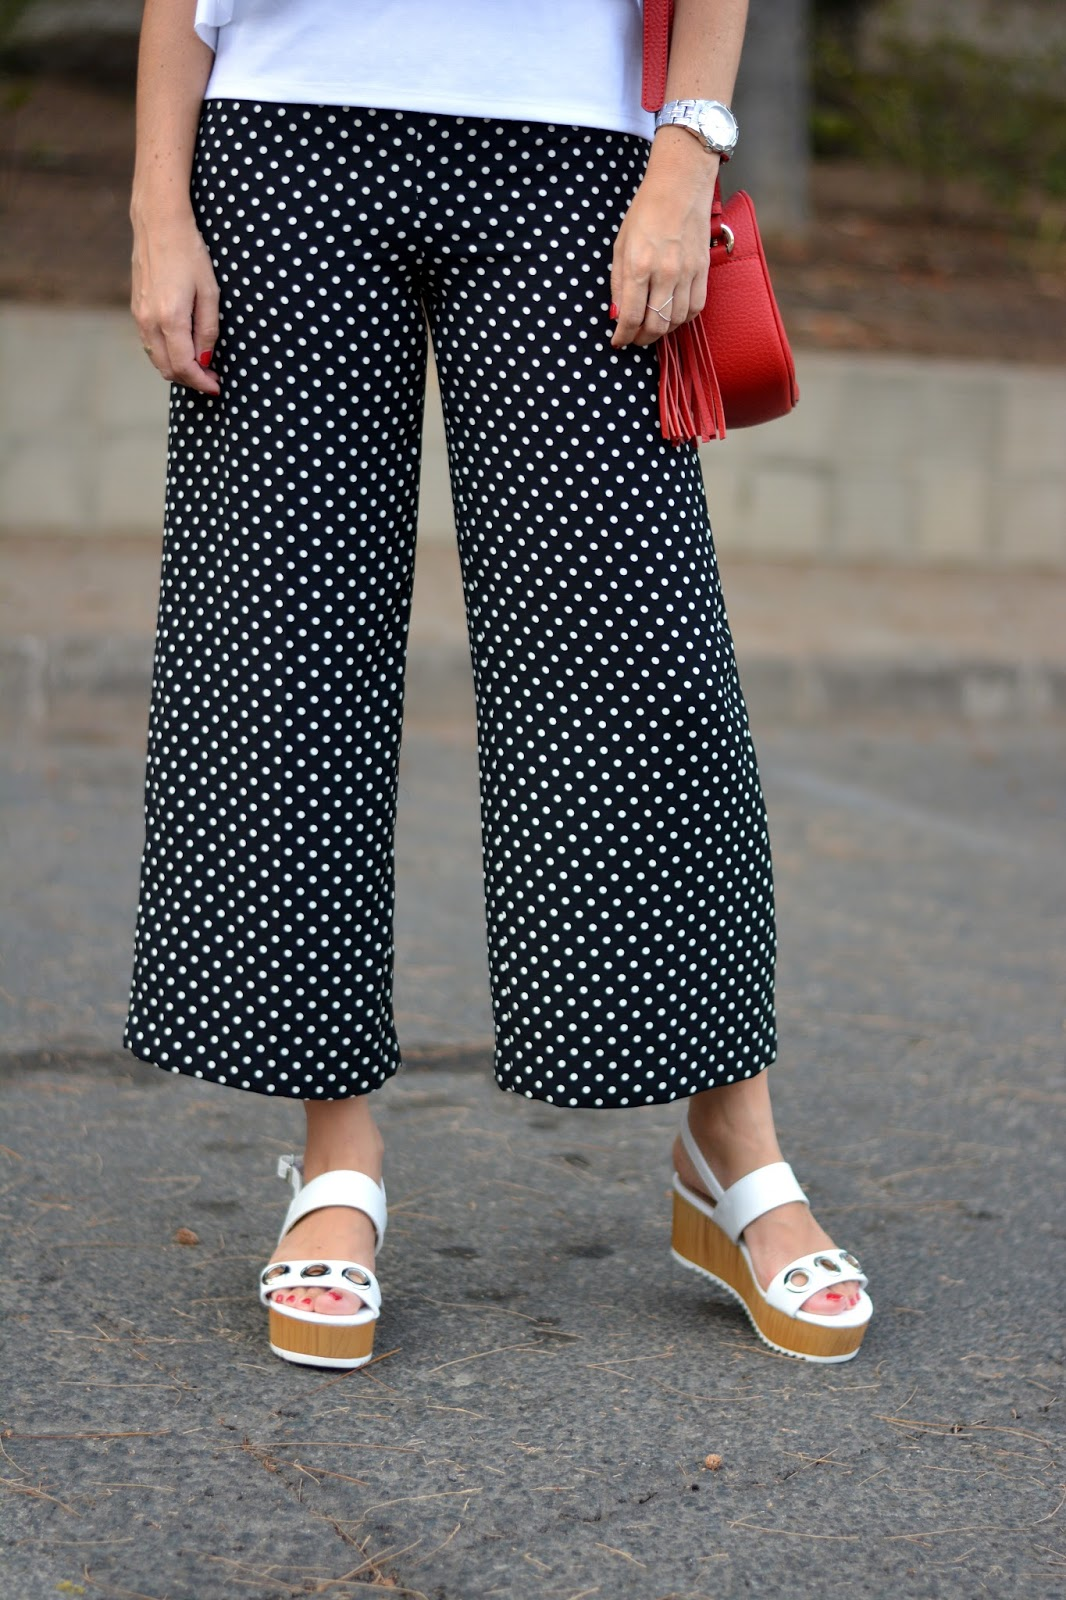 zara-polka-dots-trousers-flatform-sandals